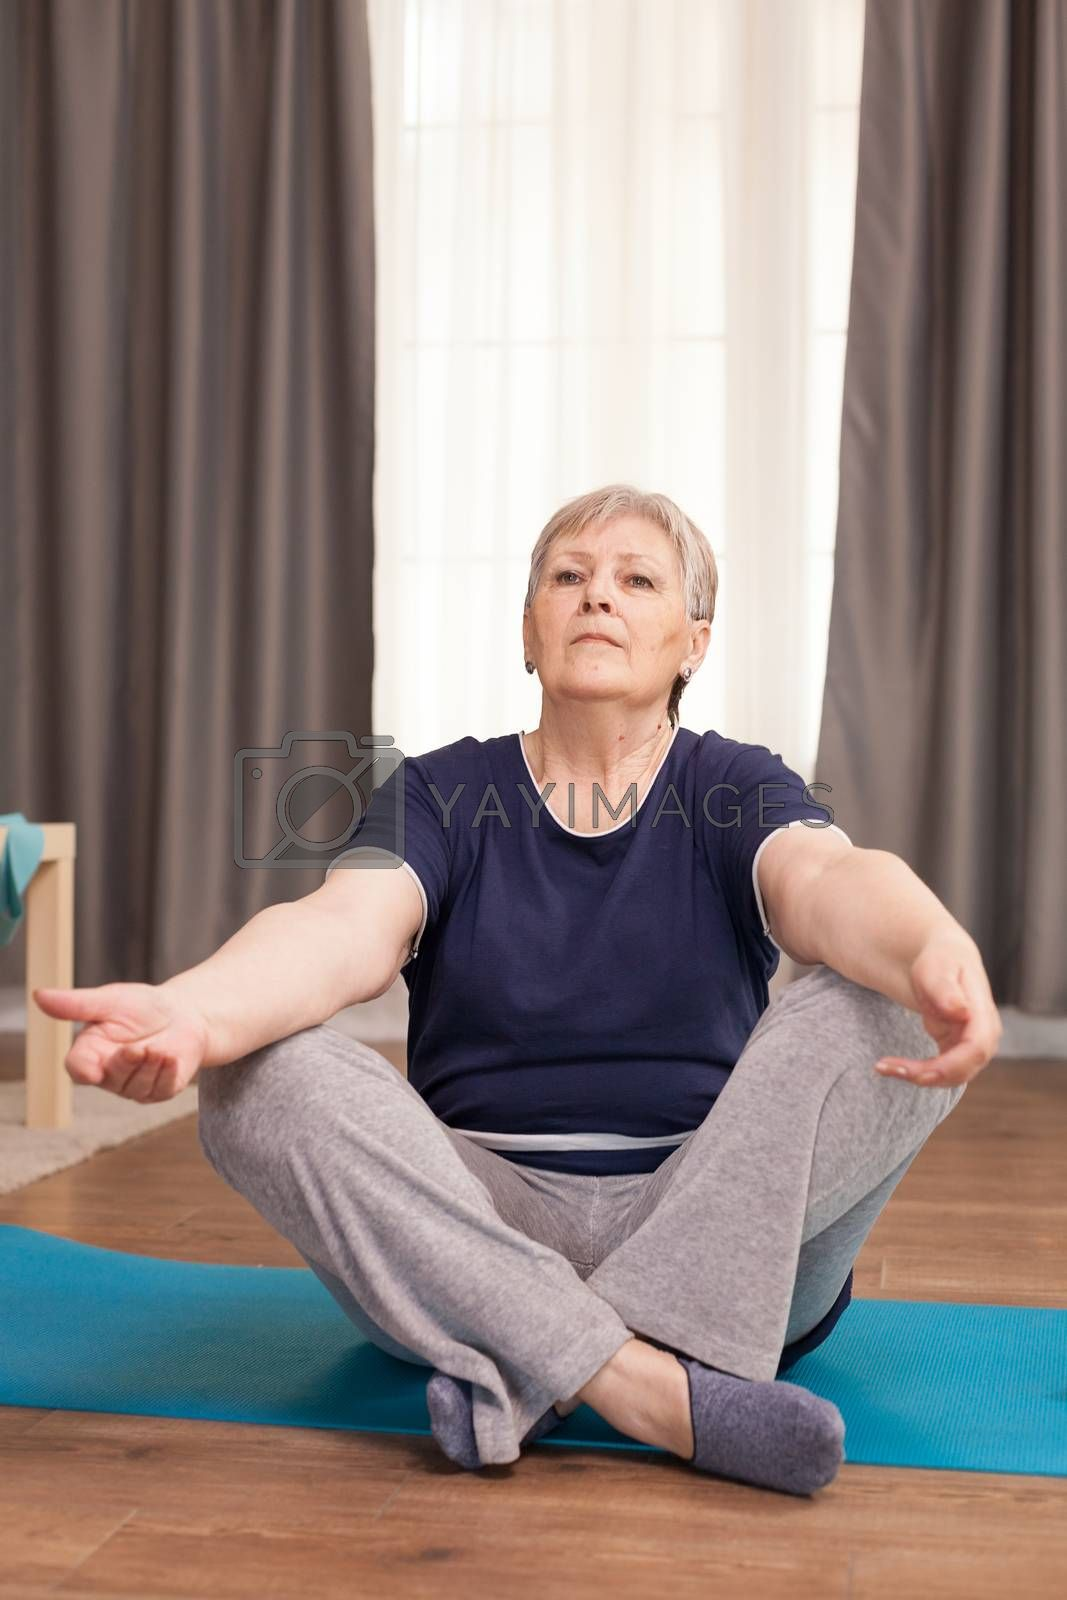 Portrait of old woman practicing yoga for a healthy body. Old person pensioner online internet exercise training at home sport activity with dumbbell, resistance band, swiss ball at elderly retirement age